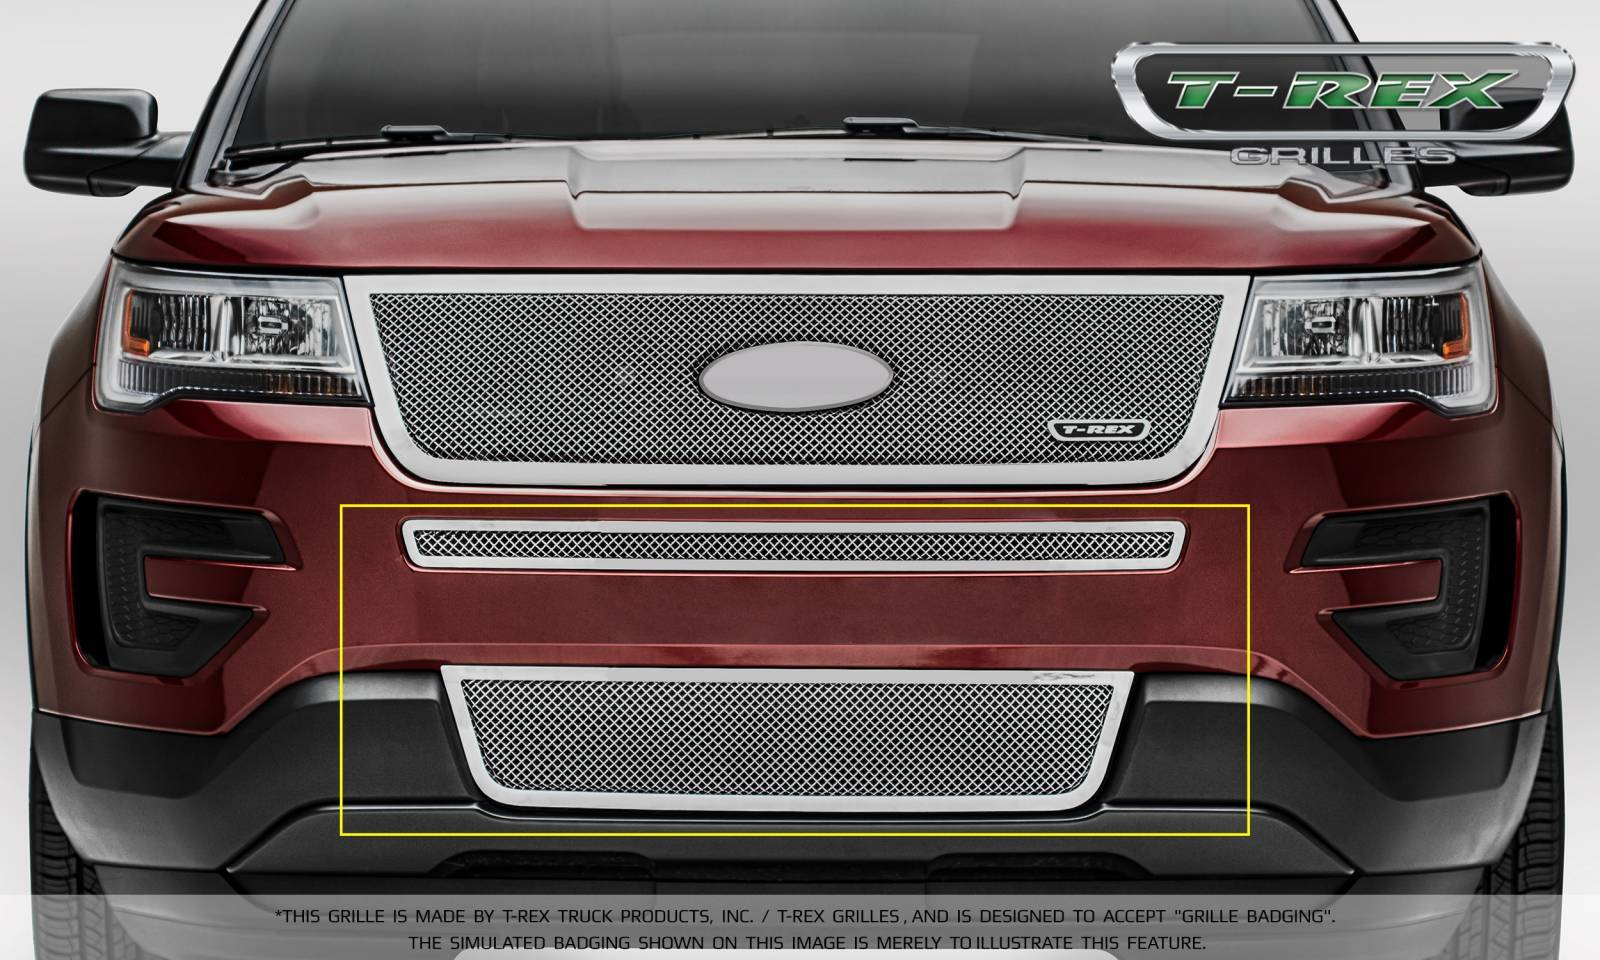 T-REX Ford Explorer - Upper Class - 2 Piece Overlay - Bumper Grille - Polished Stainless Steel Formed Mesh - Pt # 55664